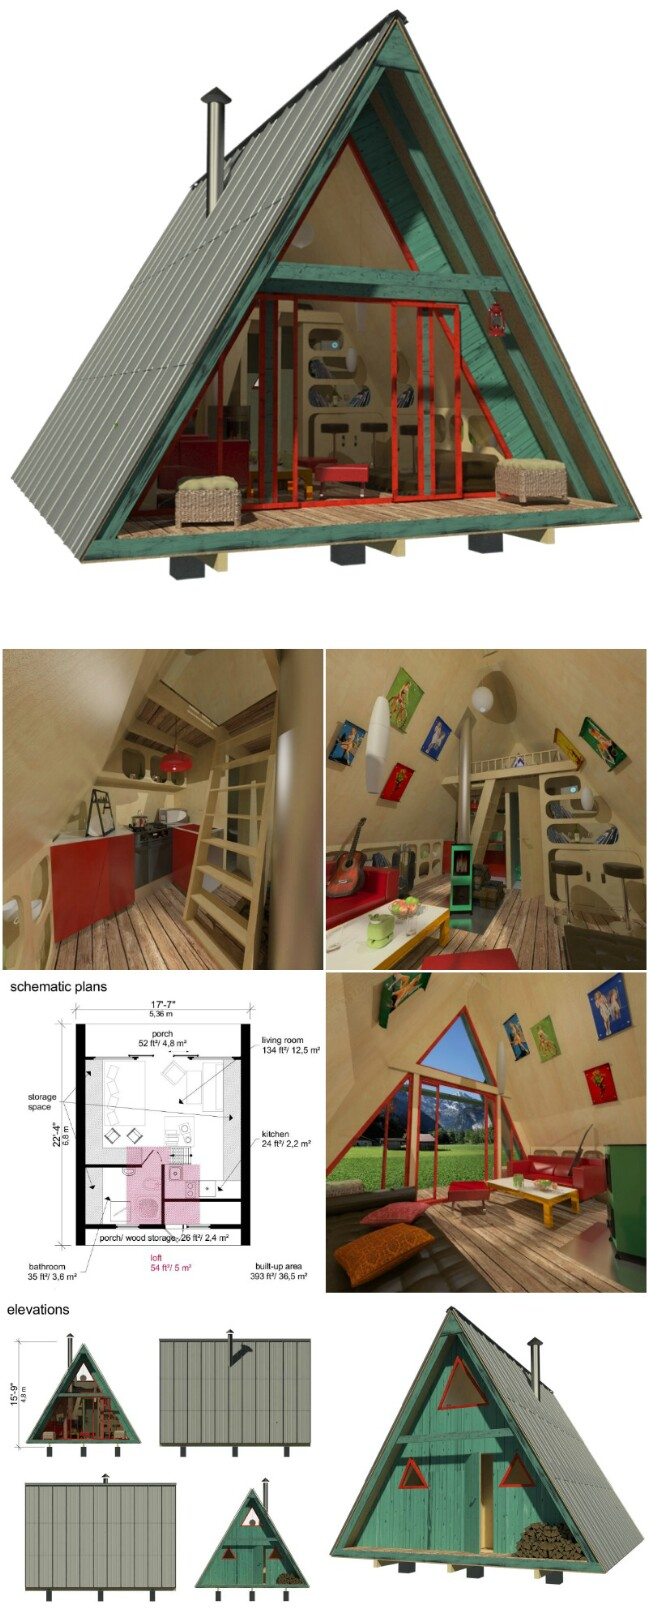 25 plans to build your own fully customized tiny house on for Small a frame home plans